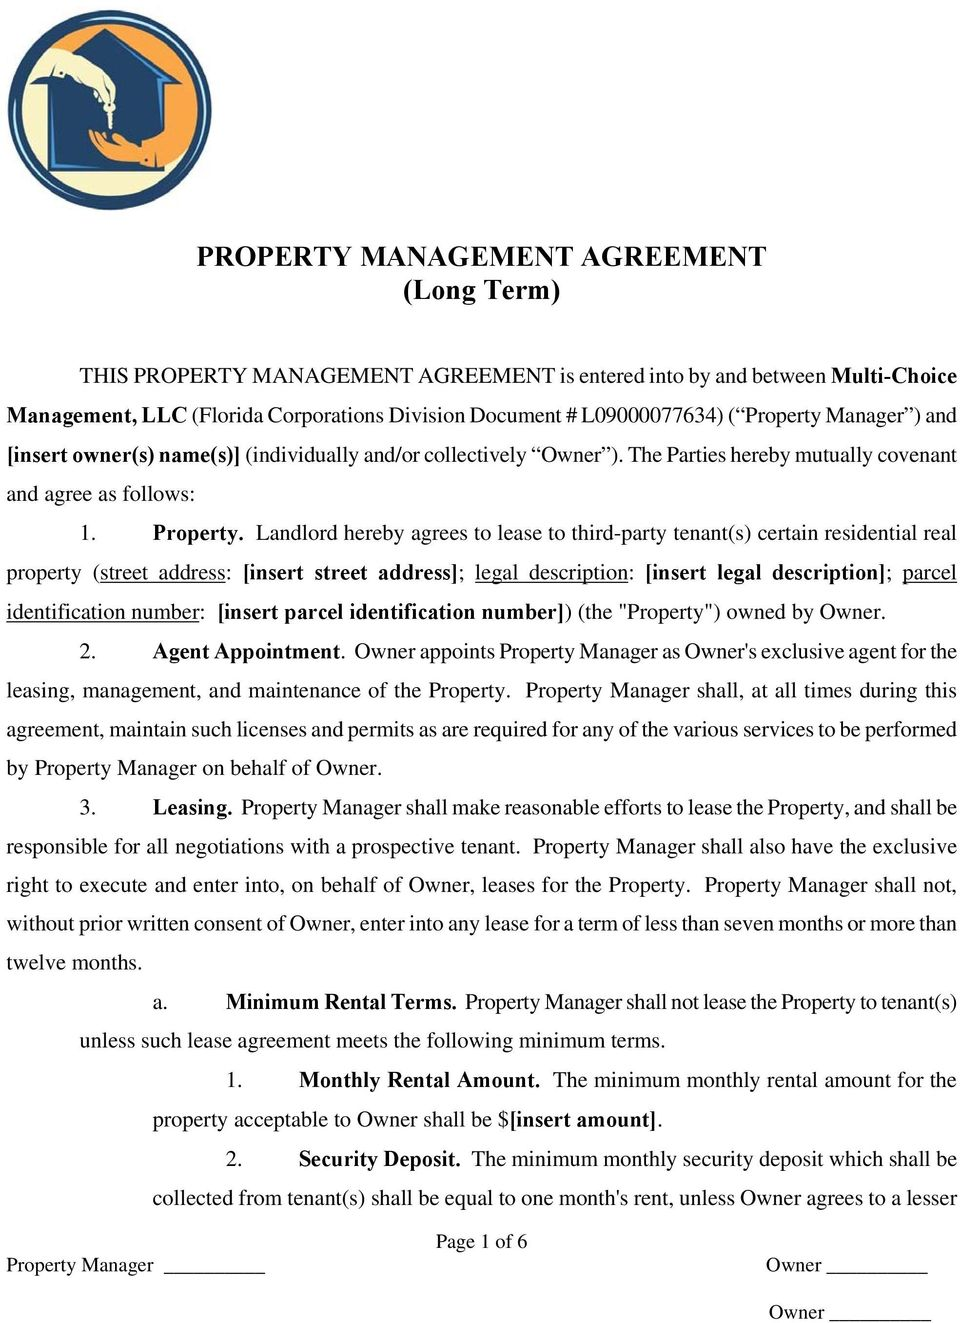 Landlord hereby agrees to lease to third-party tenant(s) certain residential real property (street address: [insert street address]; legal description: [insert legal description]; parcel